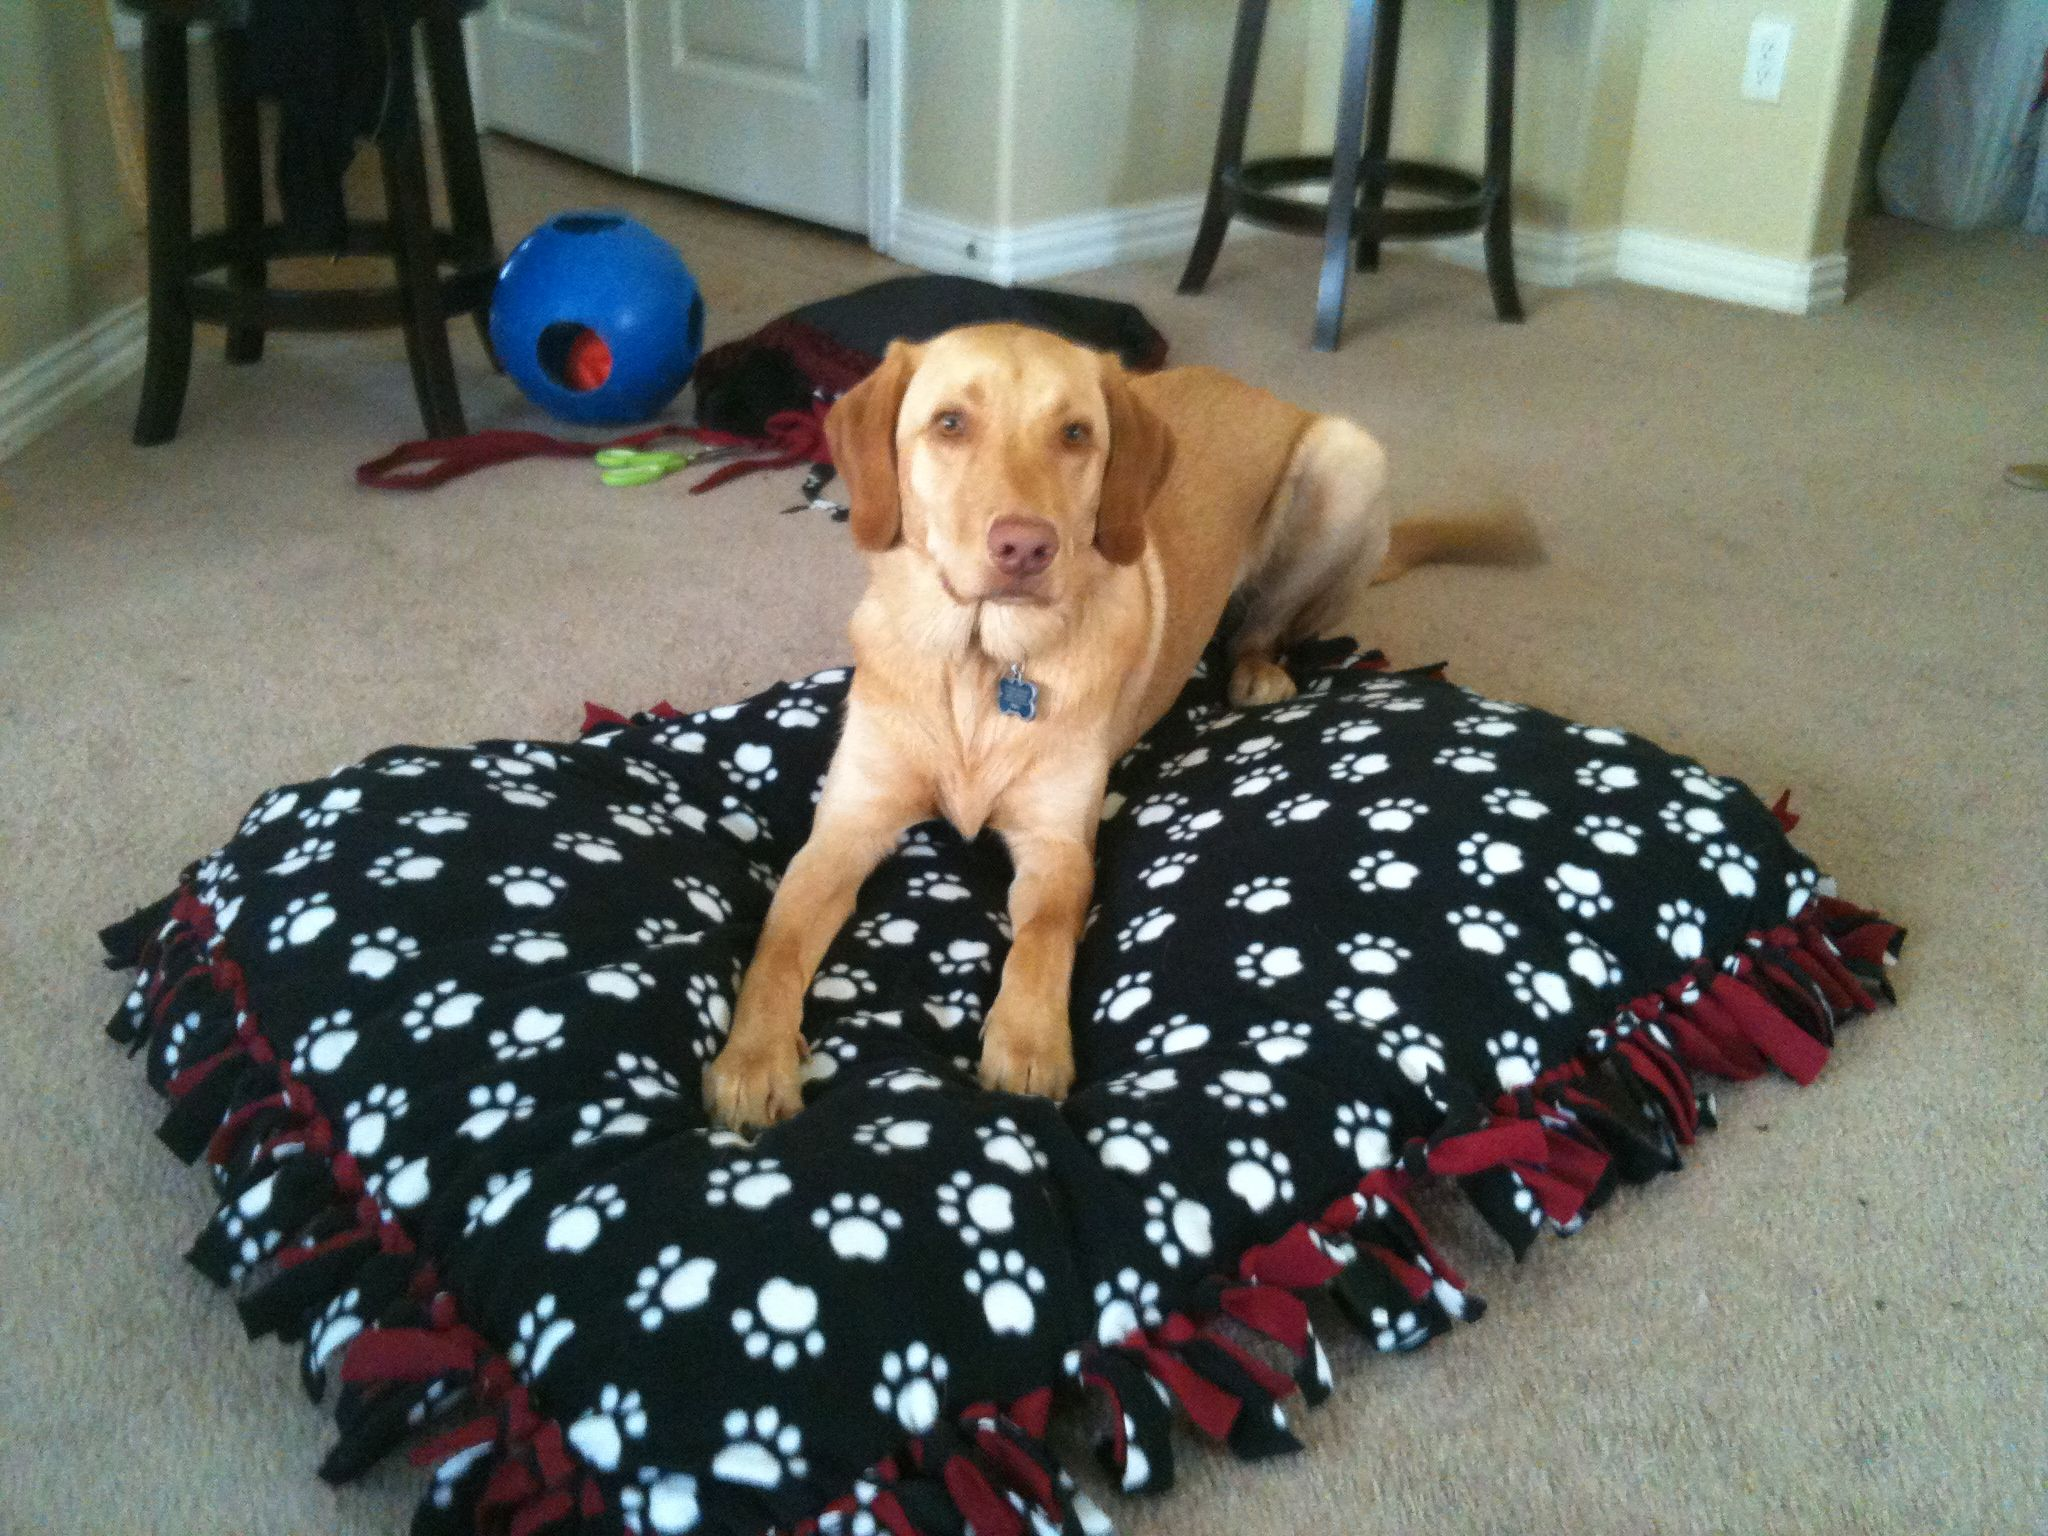 Ideas For Old Pillows: Homemade dog bed  Instead of paying $40 at the store  You can use    ,